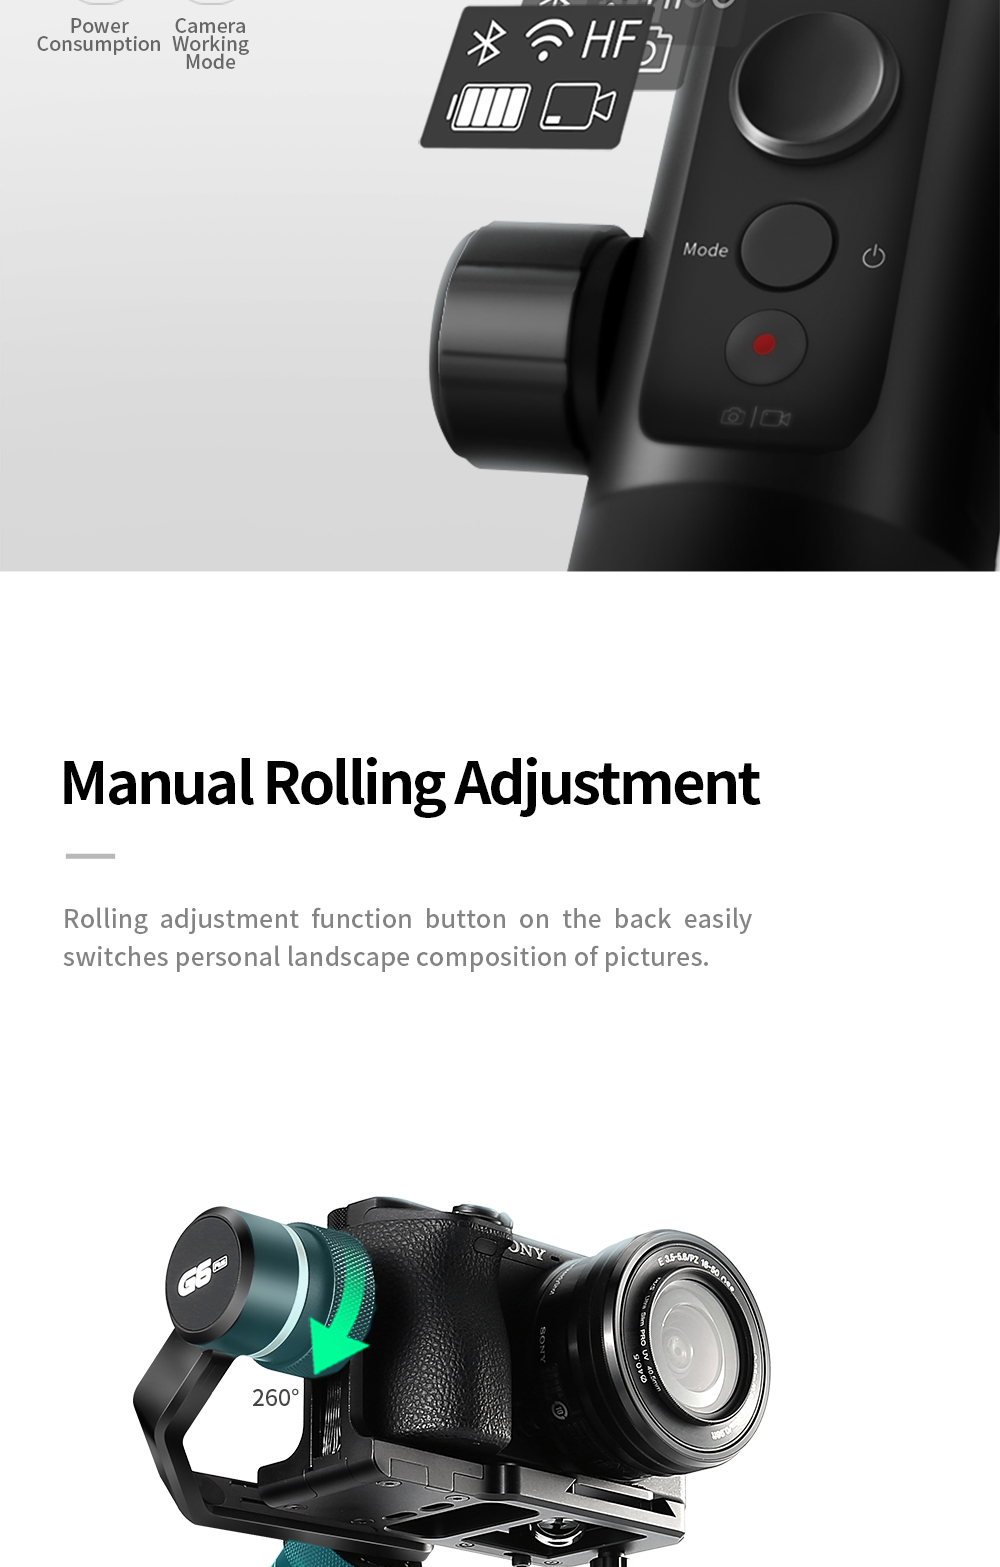 FeiyuTech G6 Plus 3-Axis Handheld Gimbal Stabilizer for Mirrorless Camera Pocket Camera GoPro Smartphone Payload 800g Feiyu G6P 7